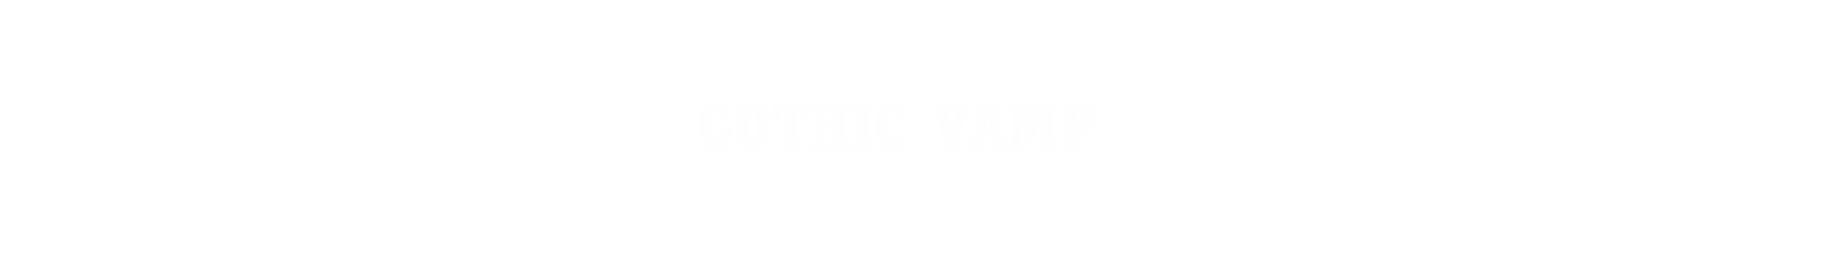 GOTHIC VAMP Collection Title